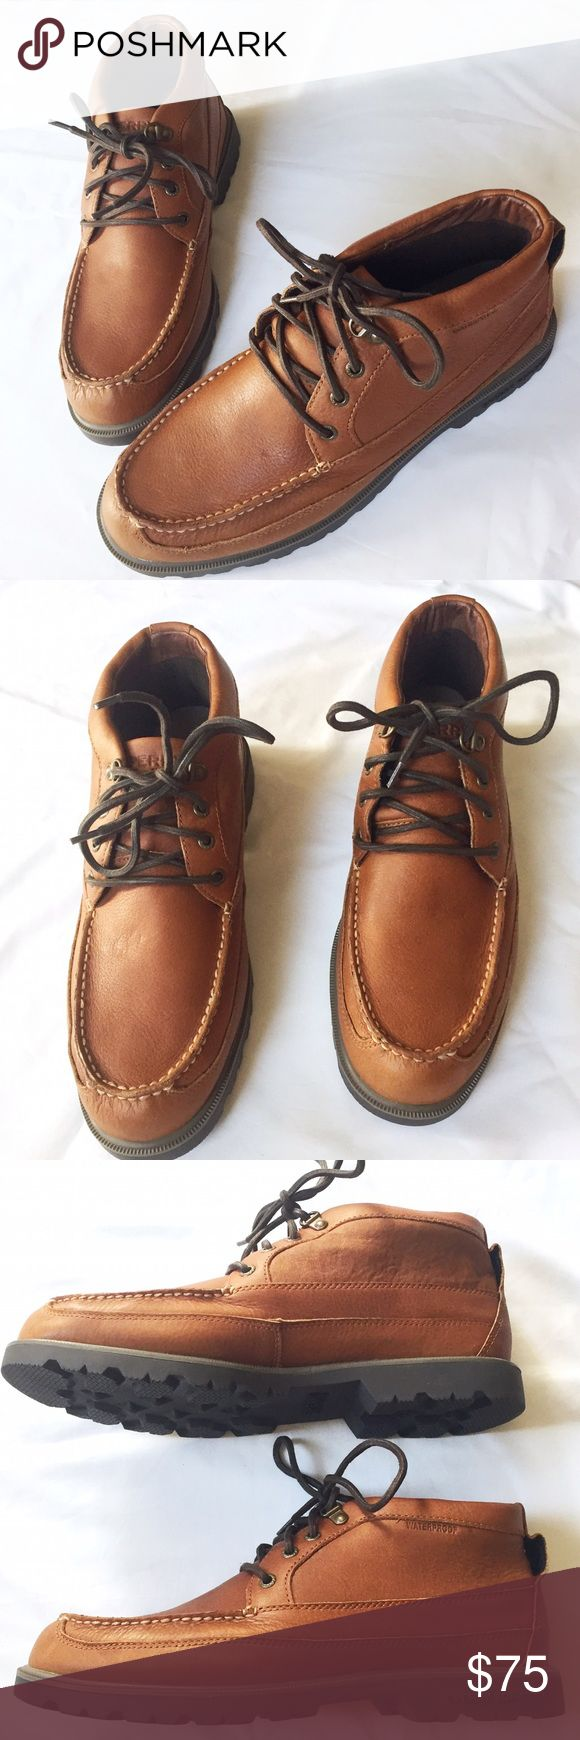 NWT Sperry Leather Top-Sider boots. Size 11 Brand new and never worn. Sperry leather boot like top-siders. Thick soles with heavy tread. Well made, solid, sturdy shoe. Water proof. Size 11 Sperry Top-Sider Shoes Chukka Boots